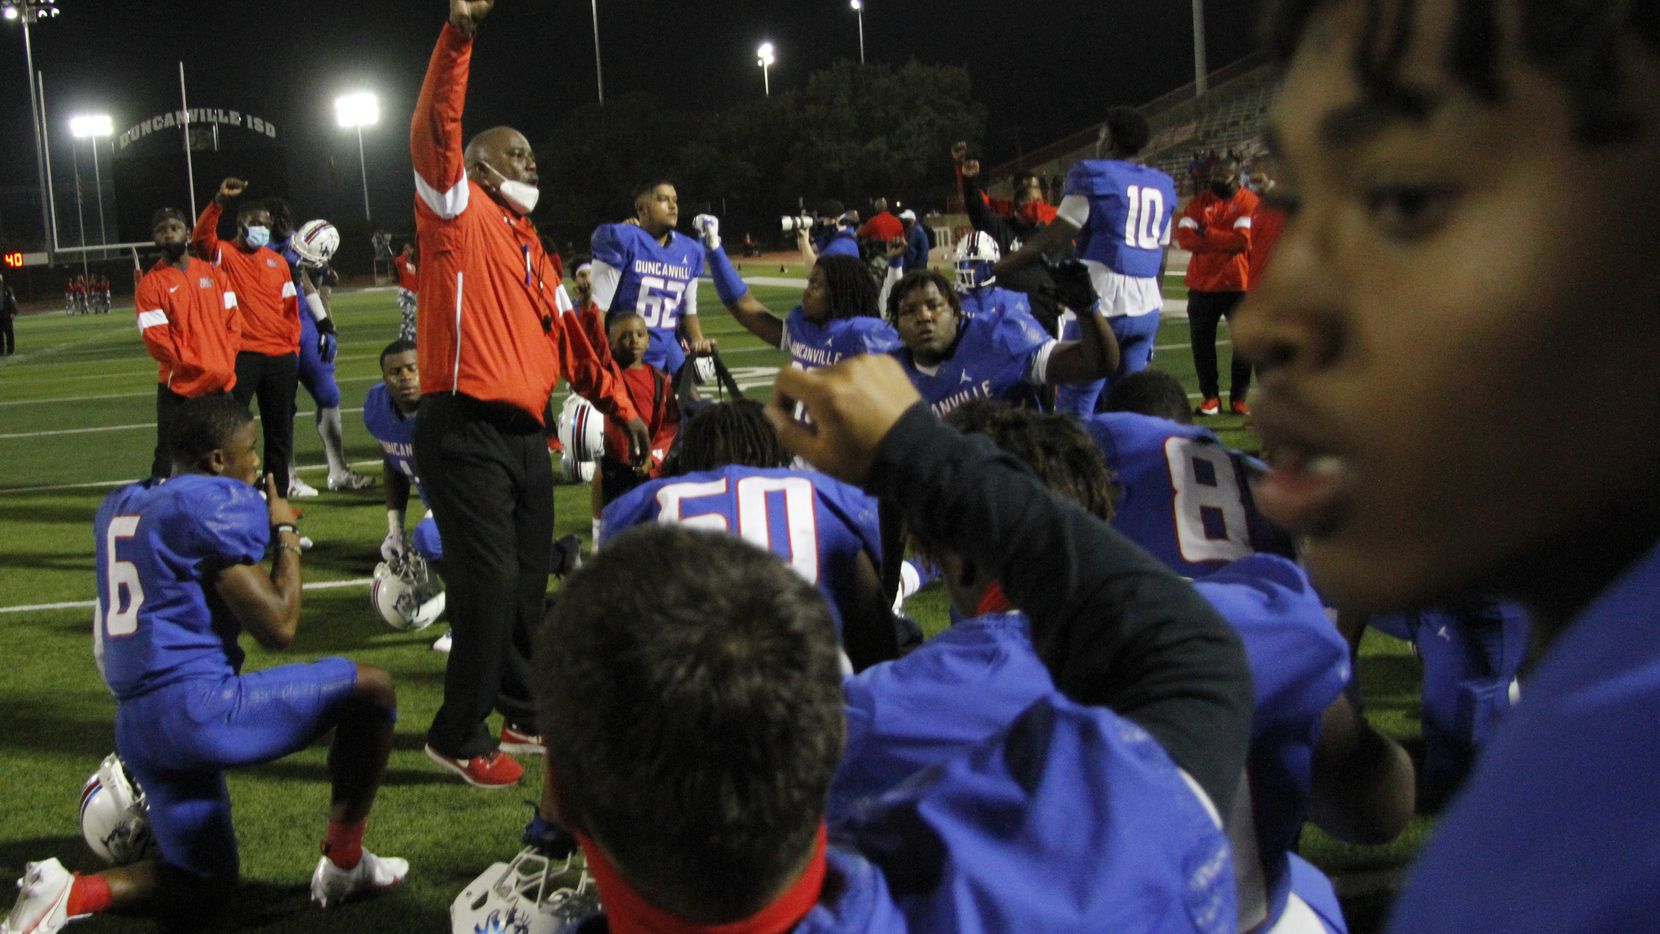 Duncanville head coach Reginald Samples delivers a motivational message to his players following their 28-14 victory over Cedar Hill. The two teams played their District 11-6A football game at Panther Stadium in Duncanville on November 13, 2020.